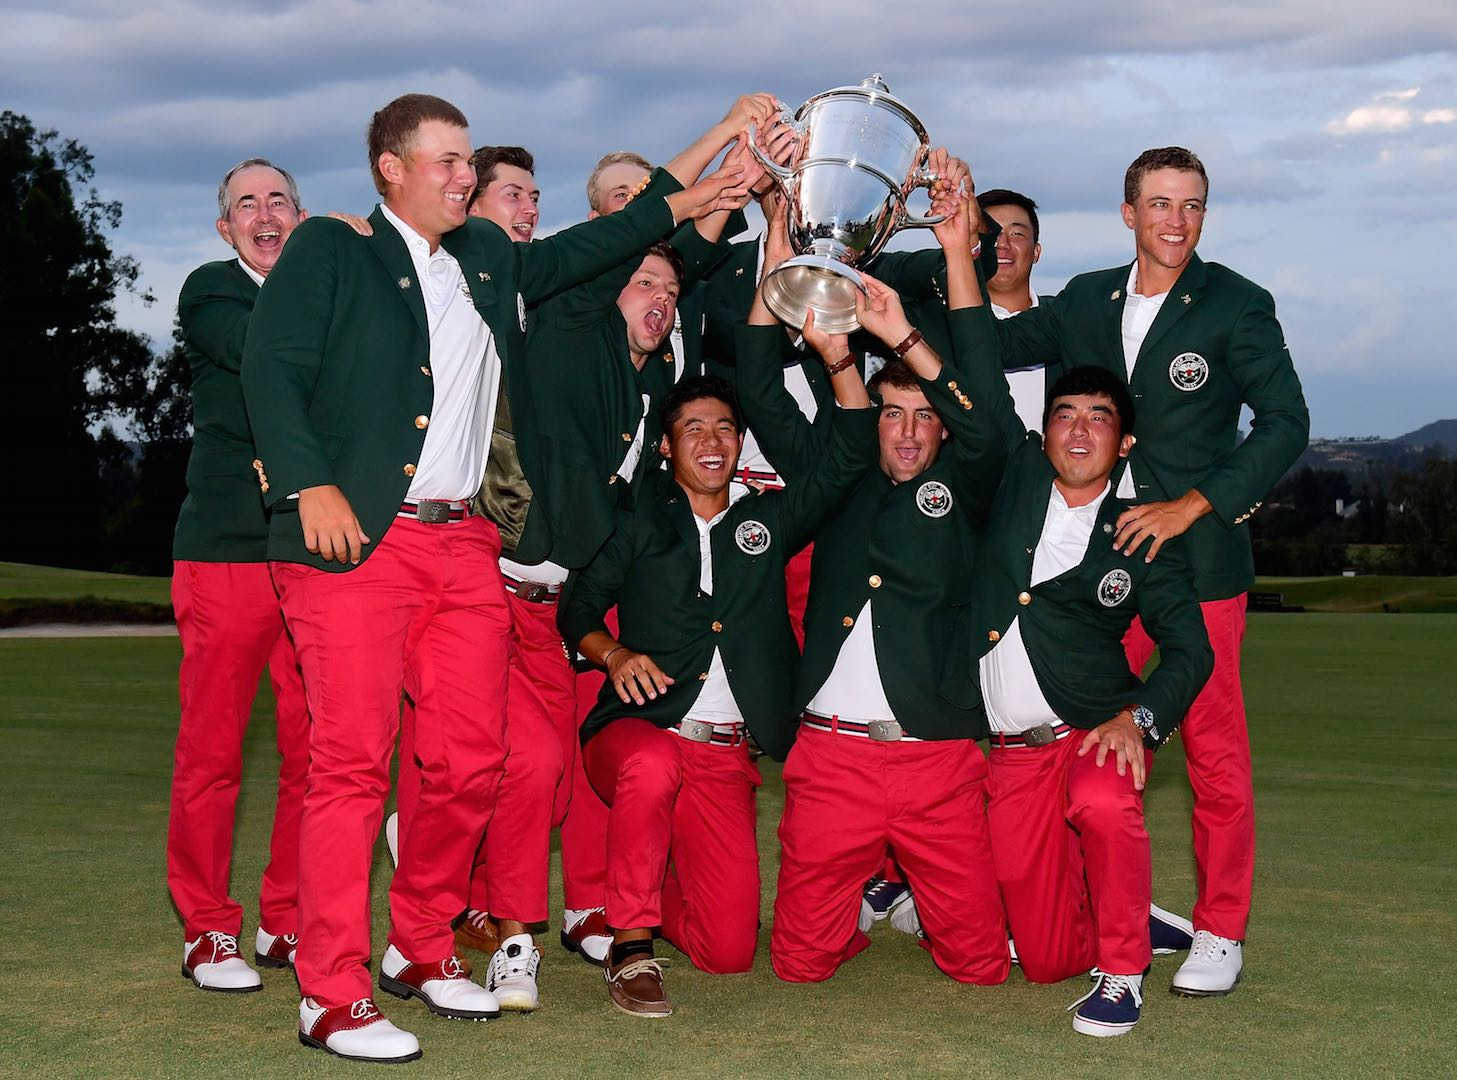 United States  delivers dominating performance, wins Walker Cup, 19-7